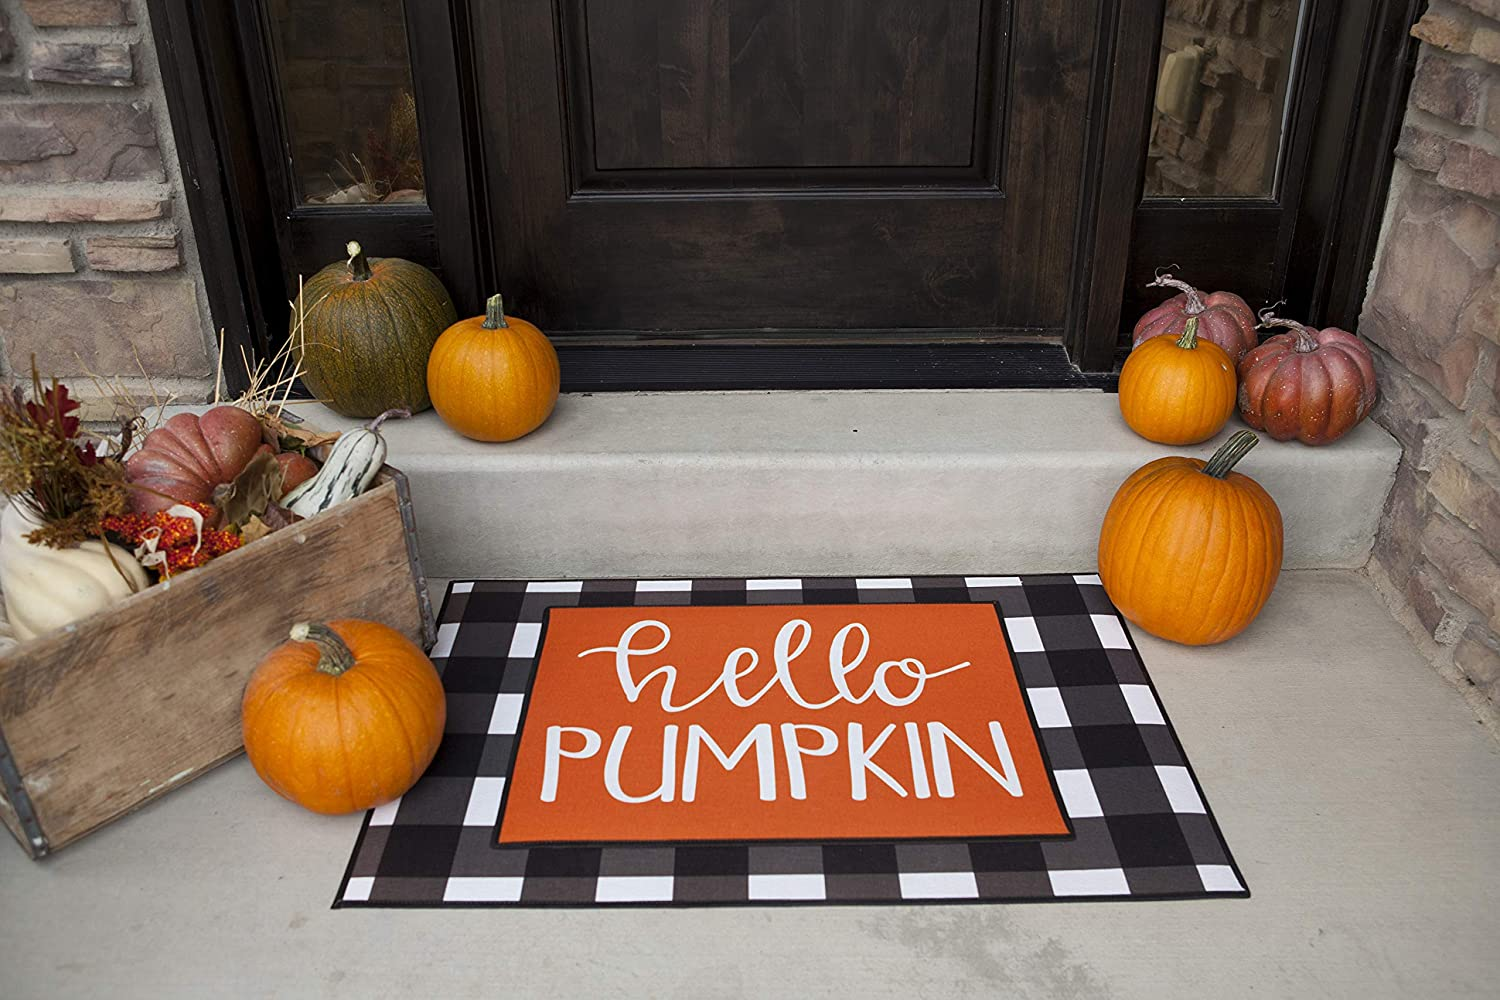 13 SPOOKY Halloween decorations ideas, fall halloween decorations DIY, outdoor halloween decorations DIY ideas - Looking for the BEST outdoor Halloween decorations ideas? In this post, I will SHOW you stunning outdoor Halloween decorations DIY ideas, simple DIY Halloween decorations ideas, cheap and easy outdoor Halloween decorations DIY ideas, Fall Halloween decorations DIY ideas, best outdoor Halloween ideas, dollar store Halloween decor ideas, and more. #halloween #diy #decor #halloweendecorations #DIYideas #homedecor #Halloweendecor #falldecor #falldecorations